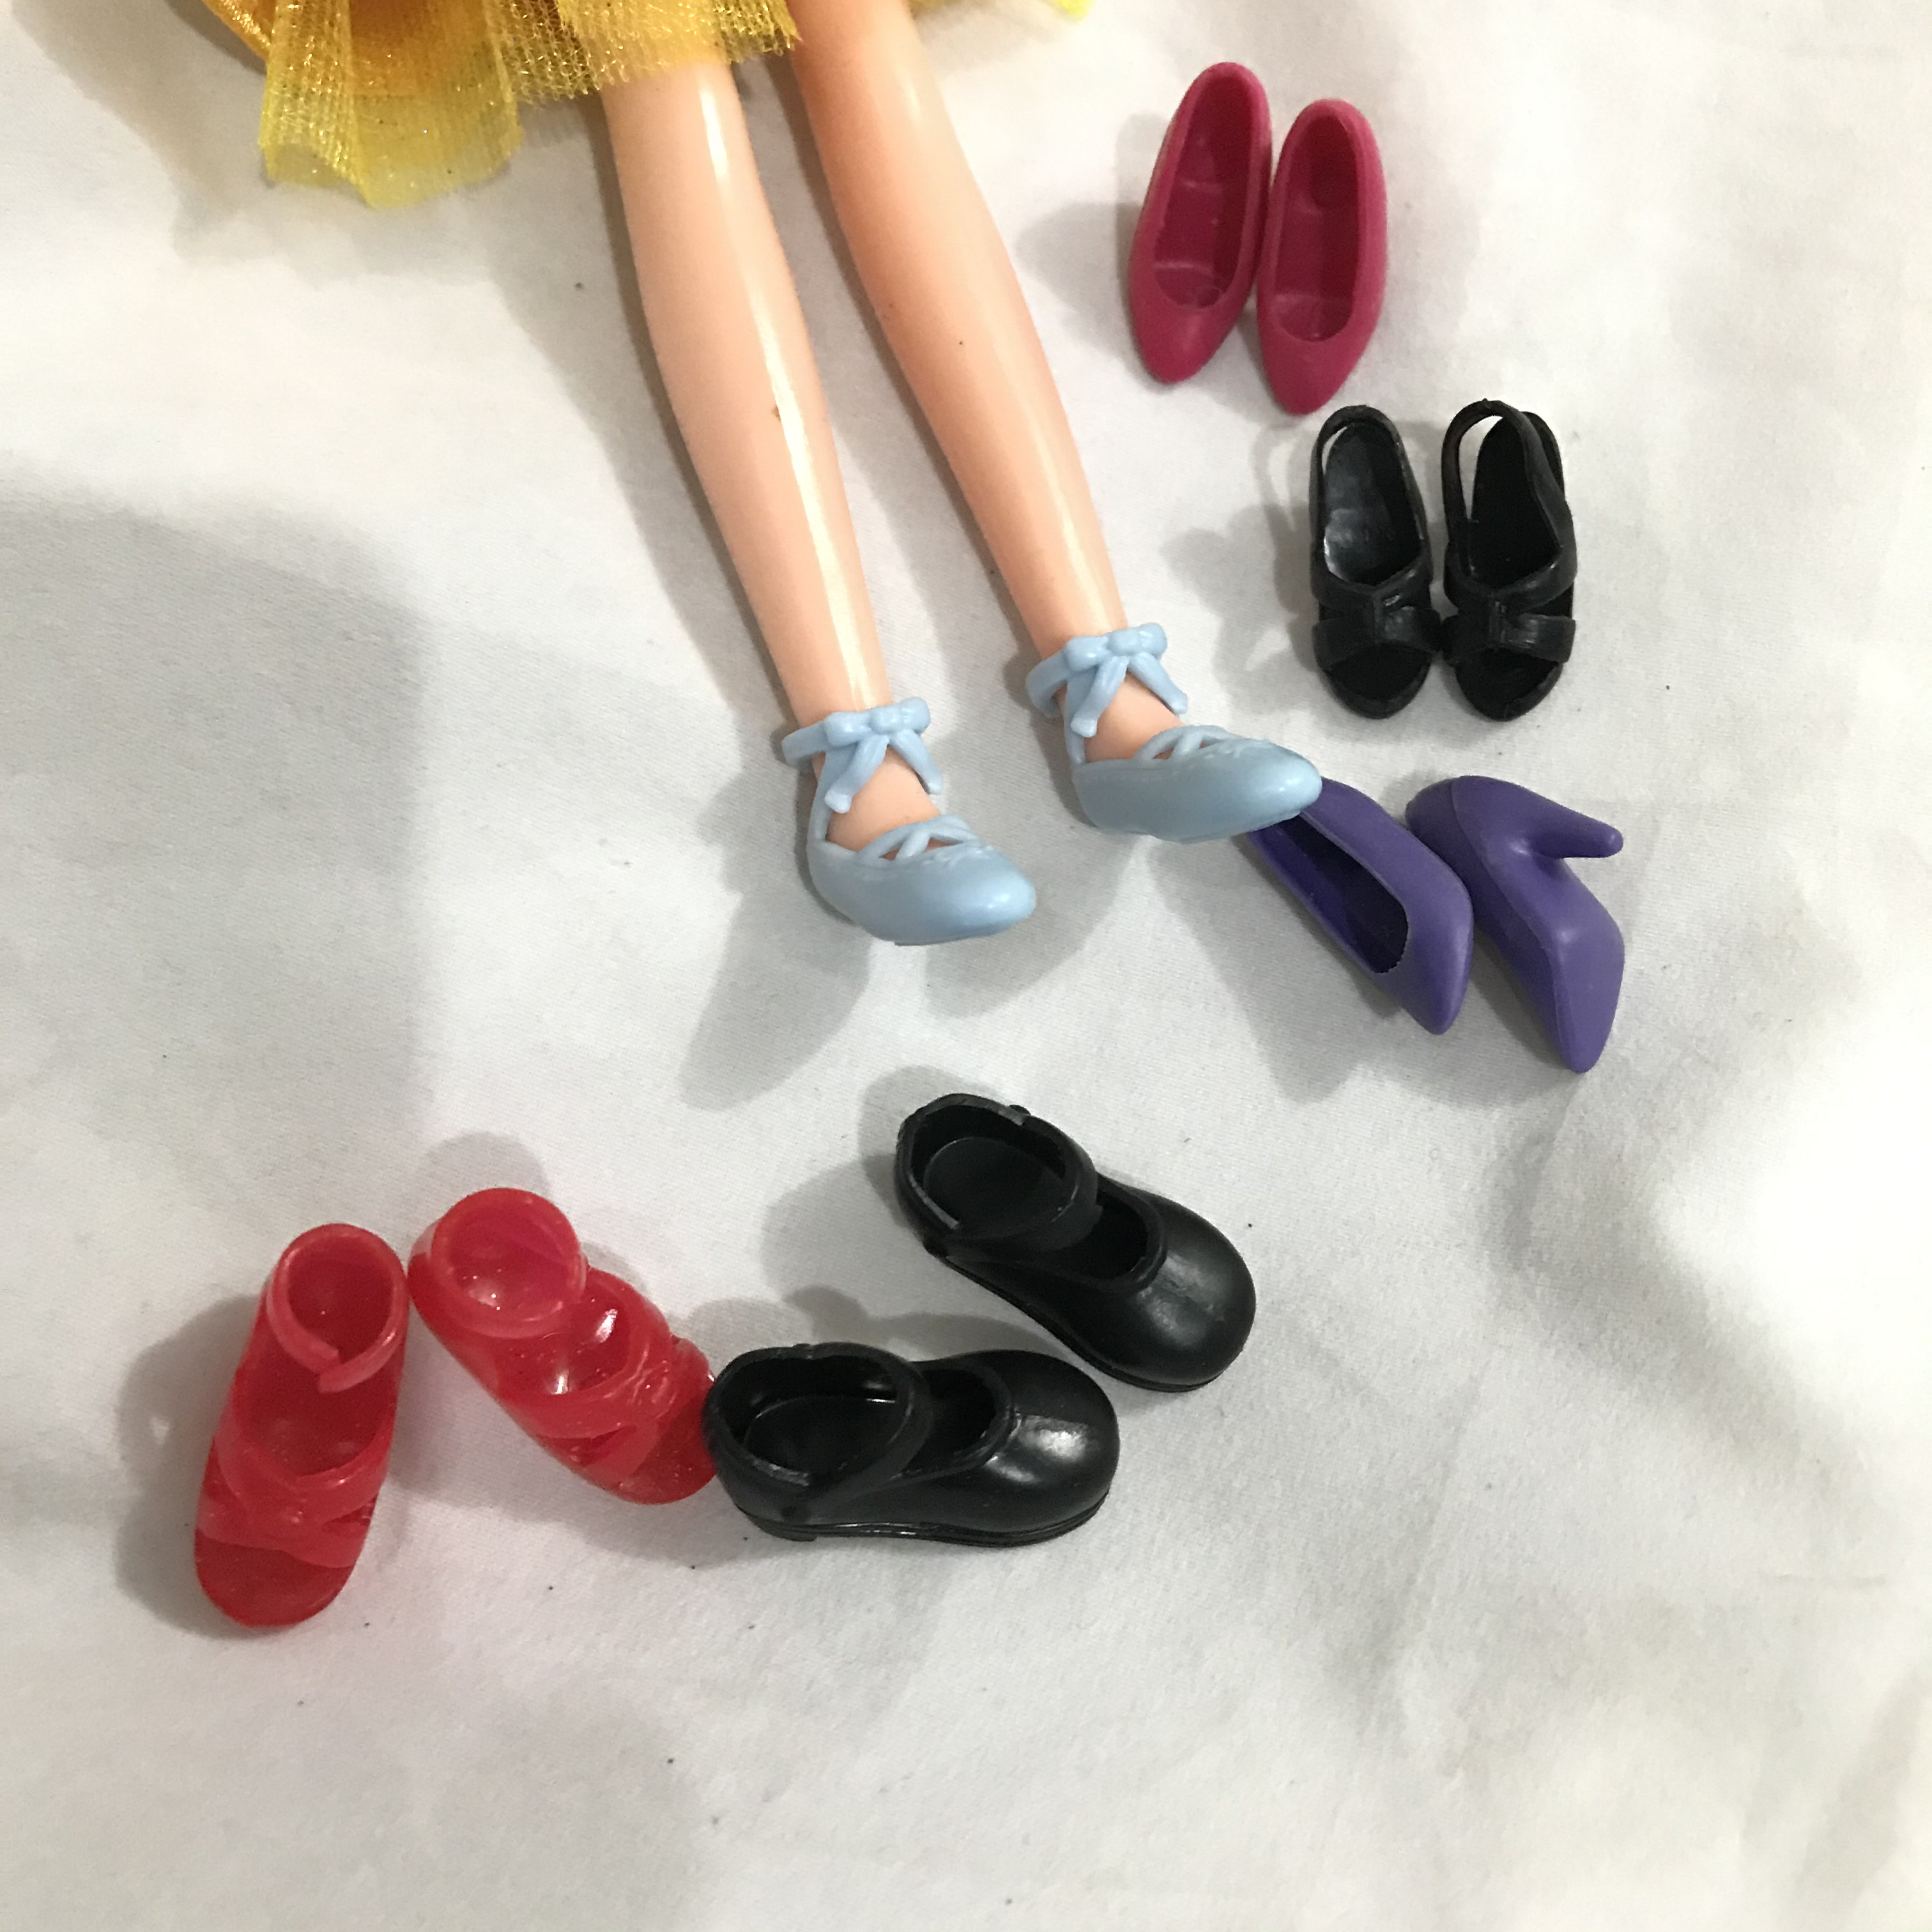 New Brand Licca Shoes Boots Sandals  Foothold Accessorries  On Sale Original  Dolls Collection Drop Shipping